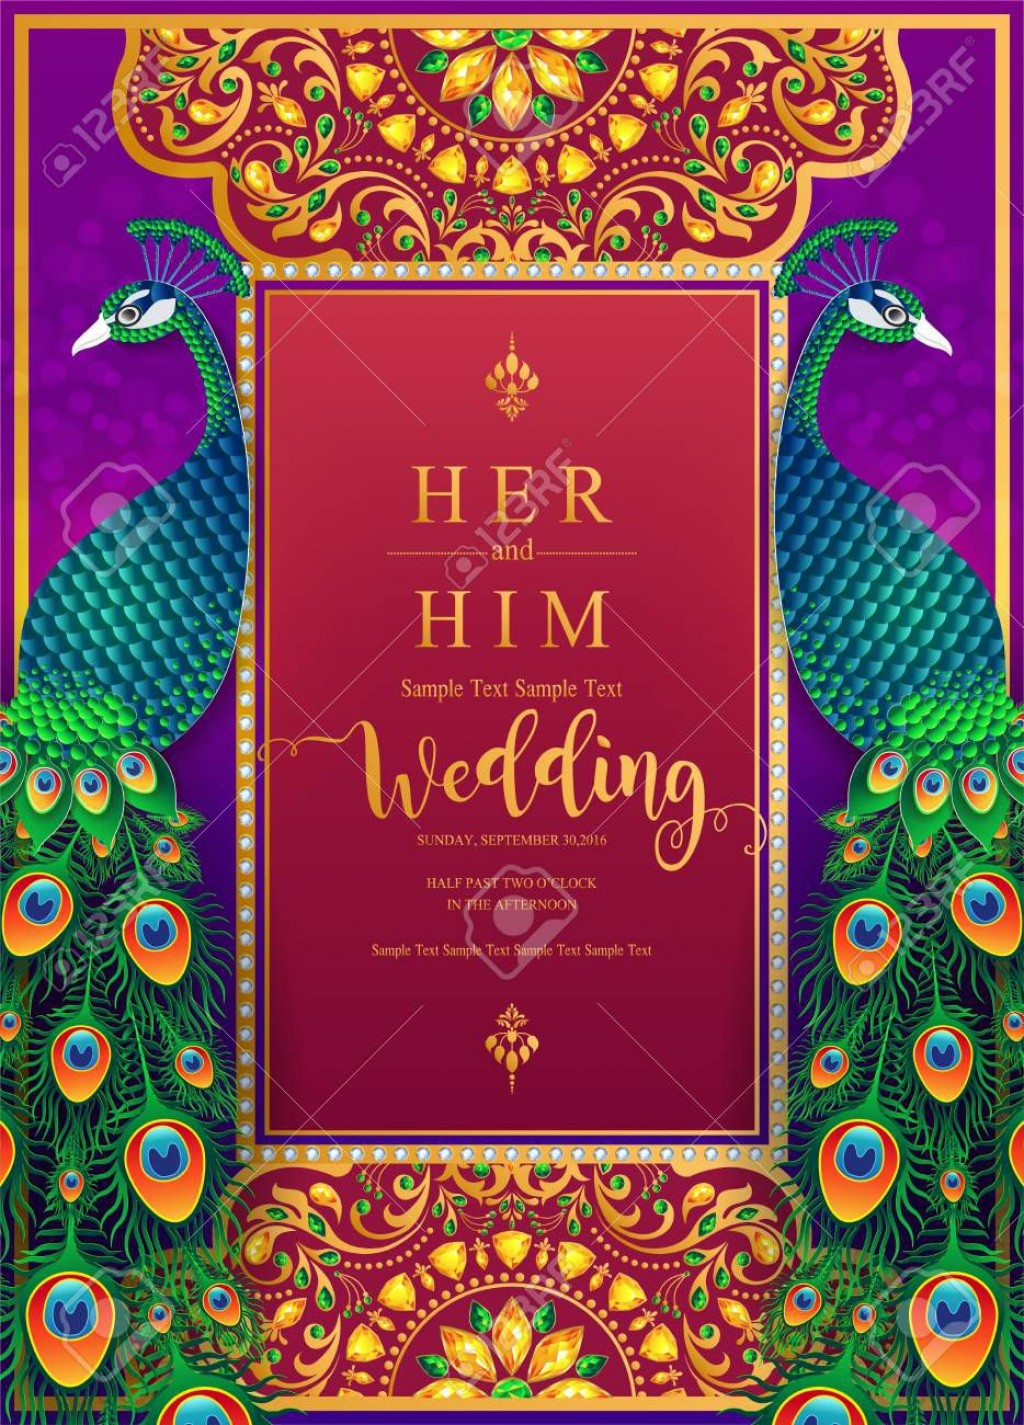 007 Amazing Indian Wedding Invitation Template Picture  Psd Free Download Marriage Online For FriendLarge